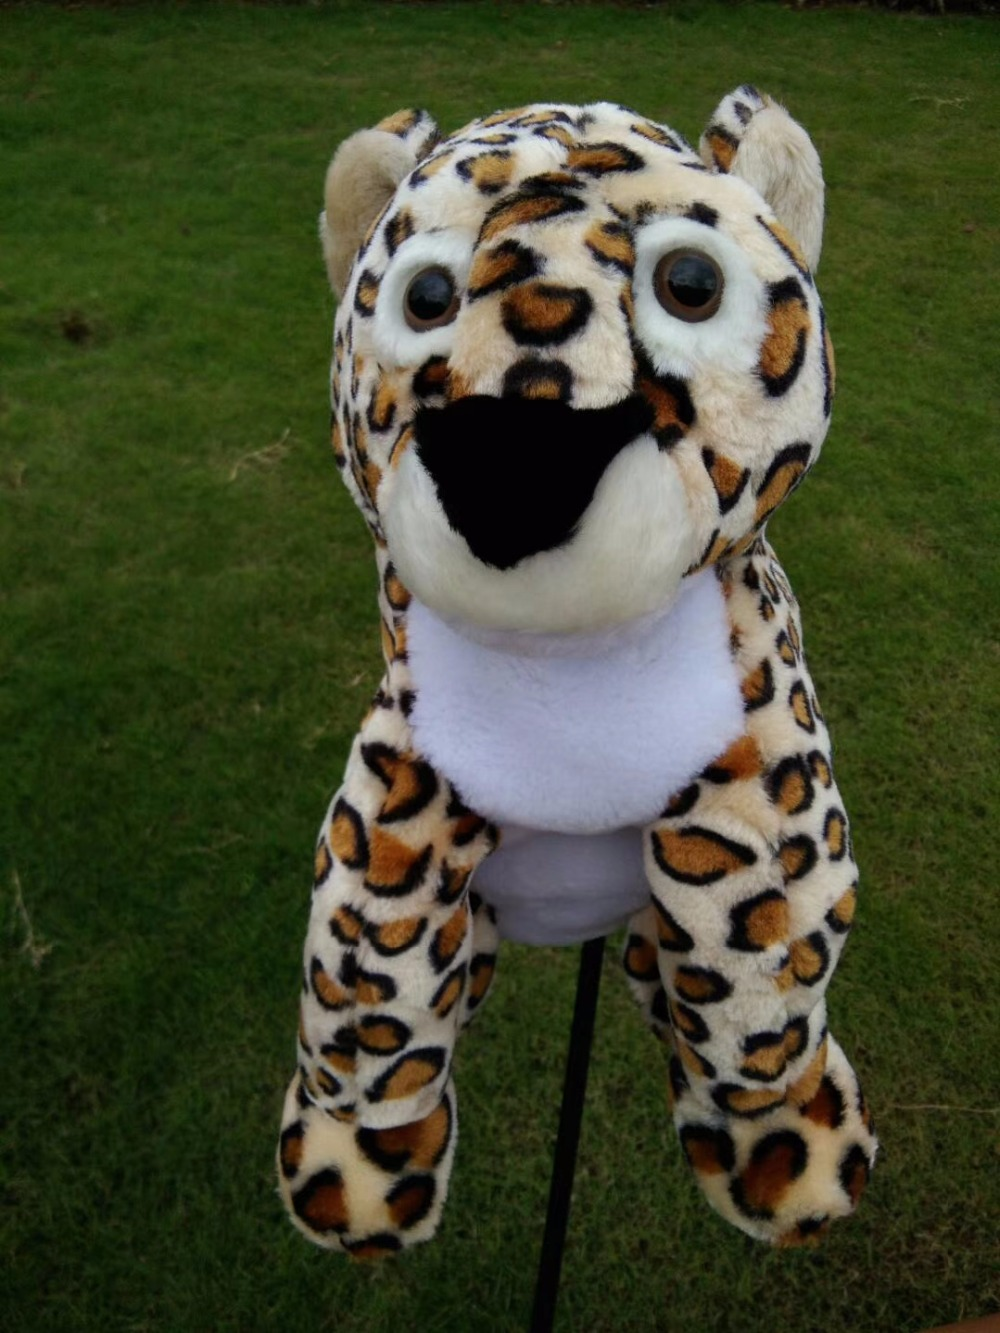 Leopard Plush Golf Driver Headcover Universal Cute Style Cartoon Animals Golf Club Protetive Cover High Quality